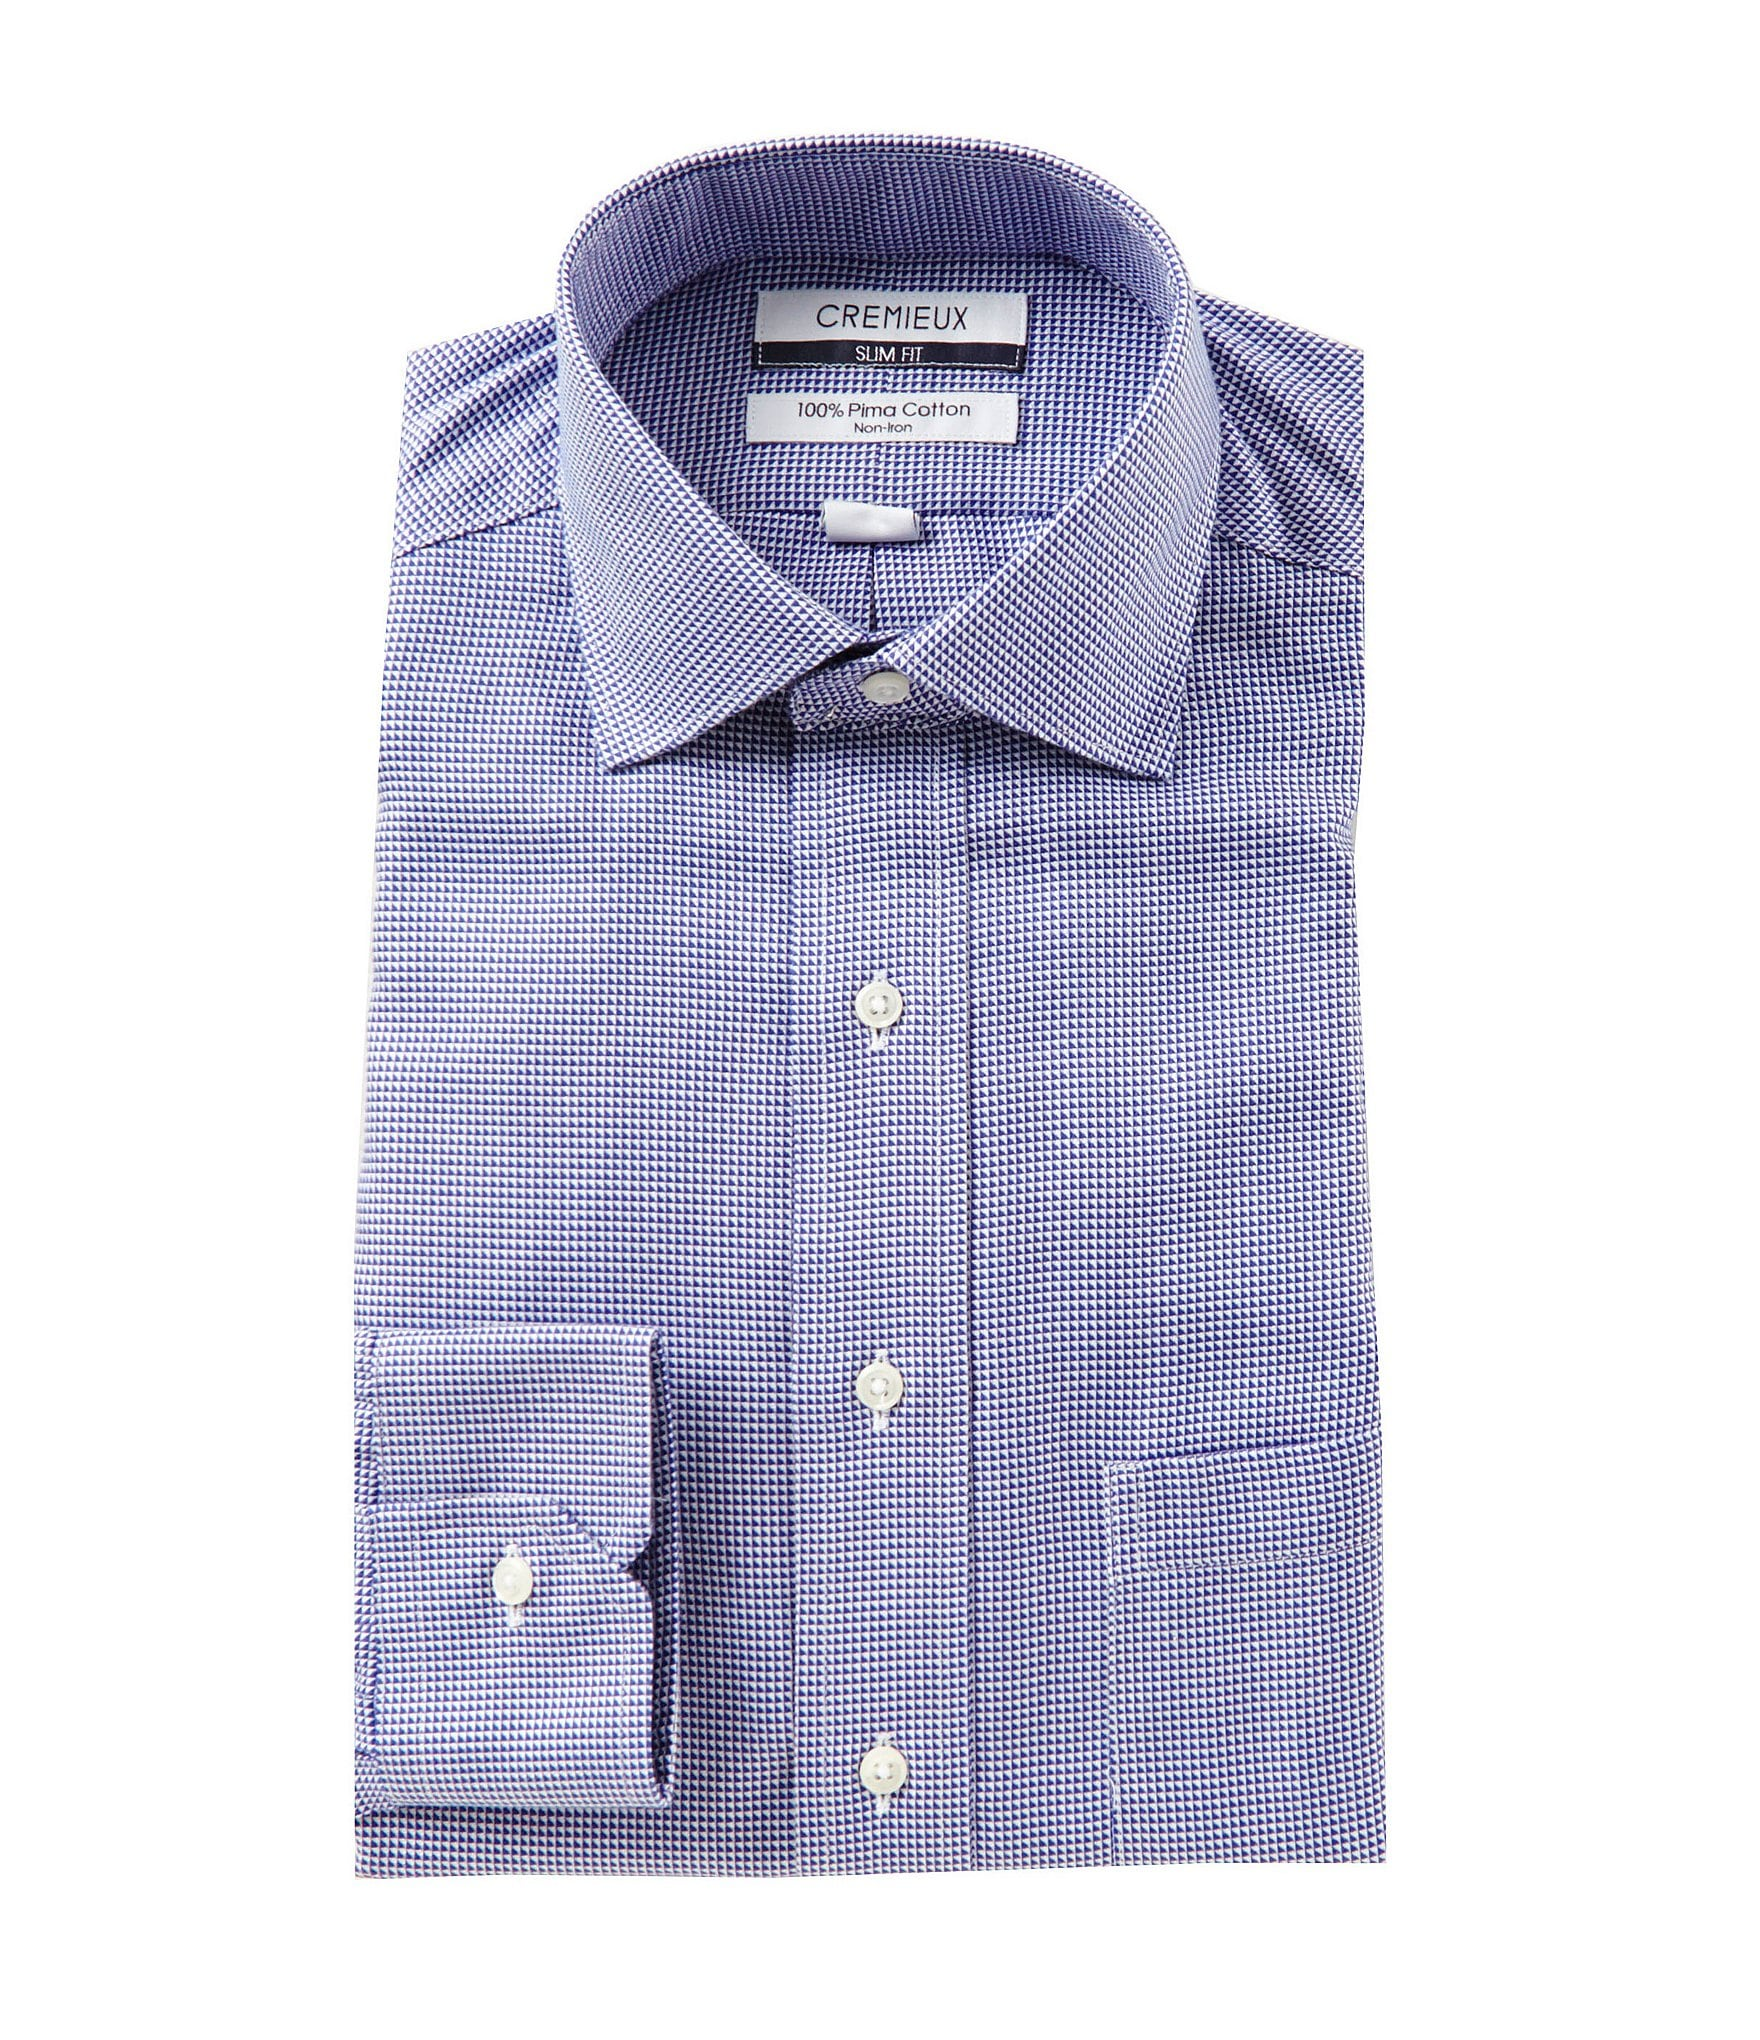 Cremieux non iron slim fit spread collar textured solid for Spread collar slim fit dress shirts